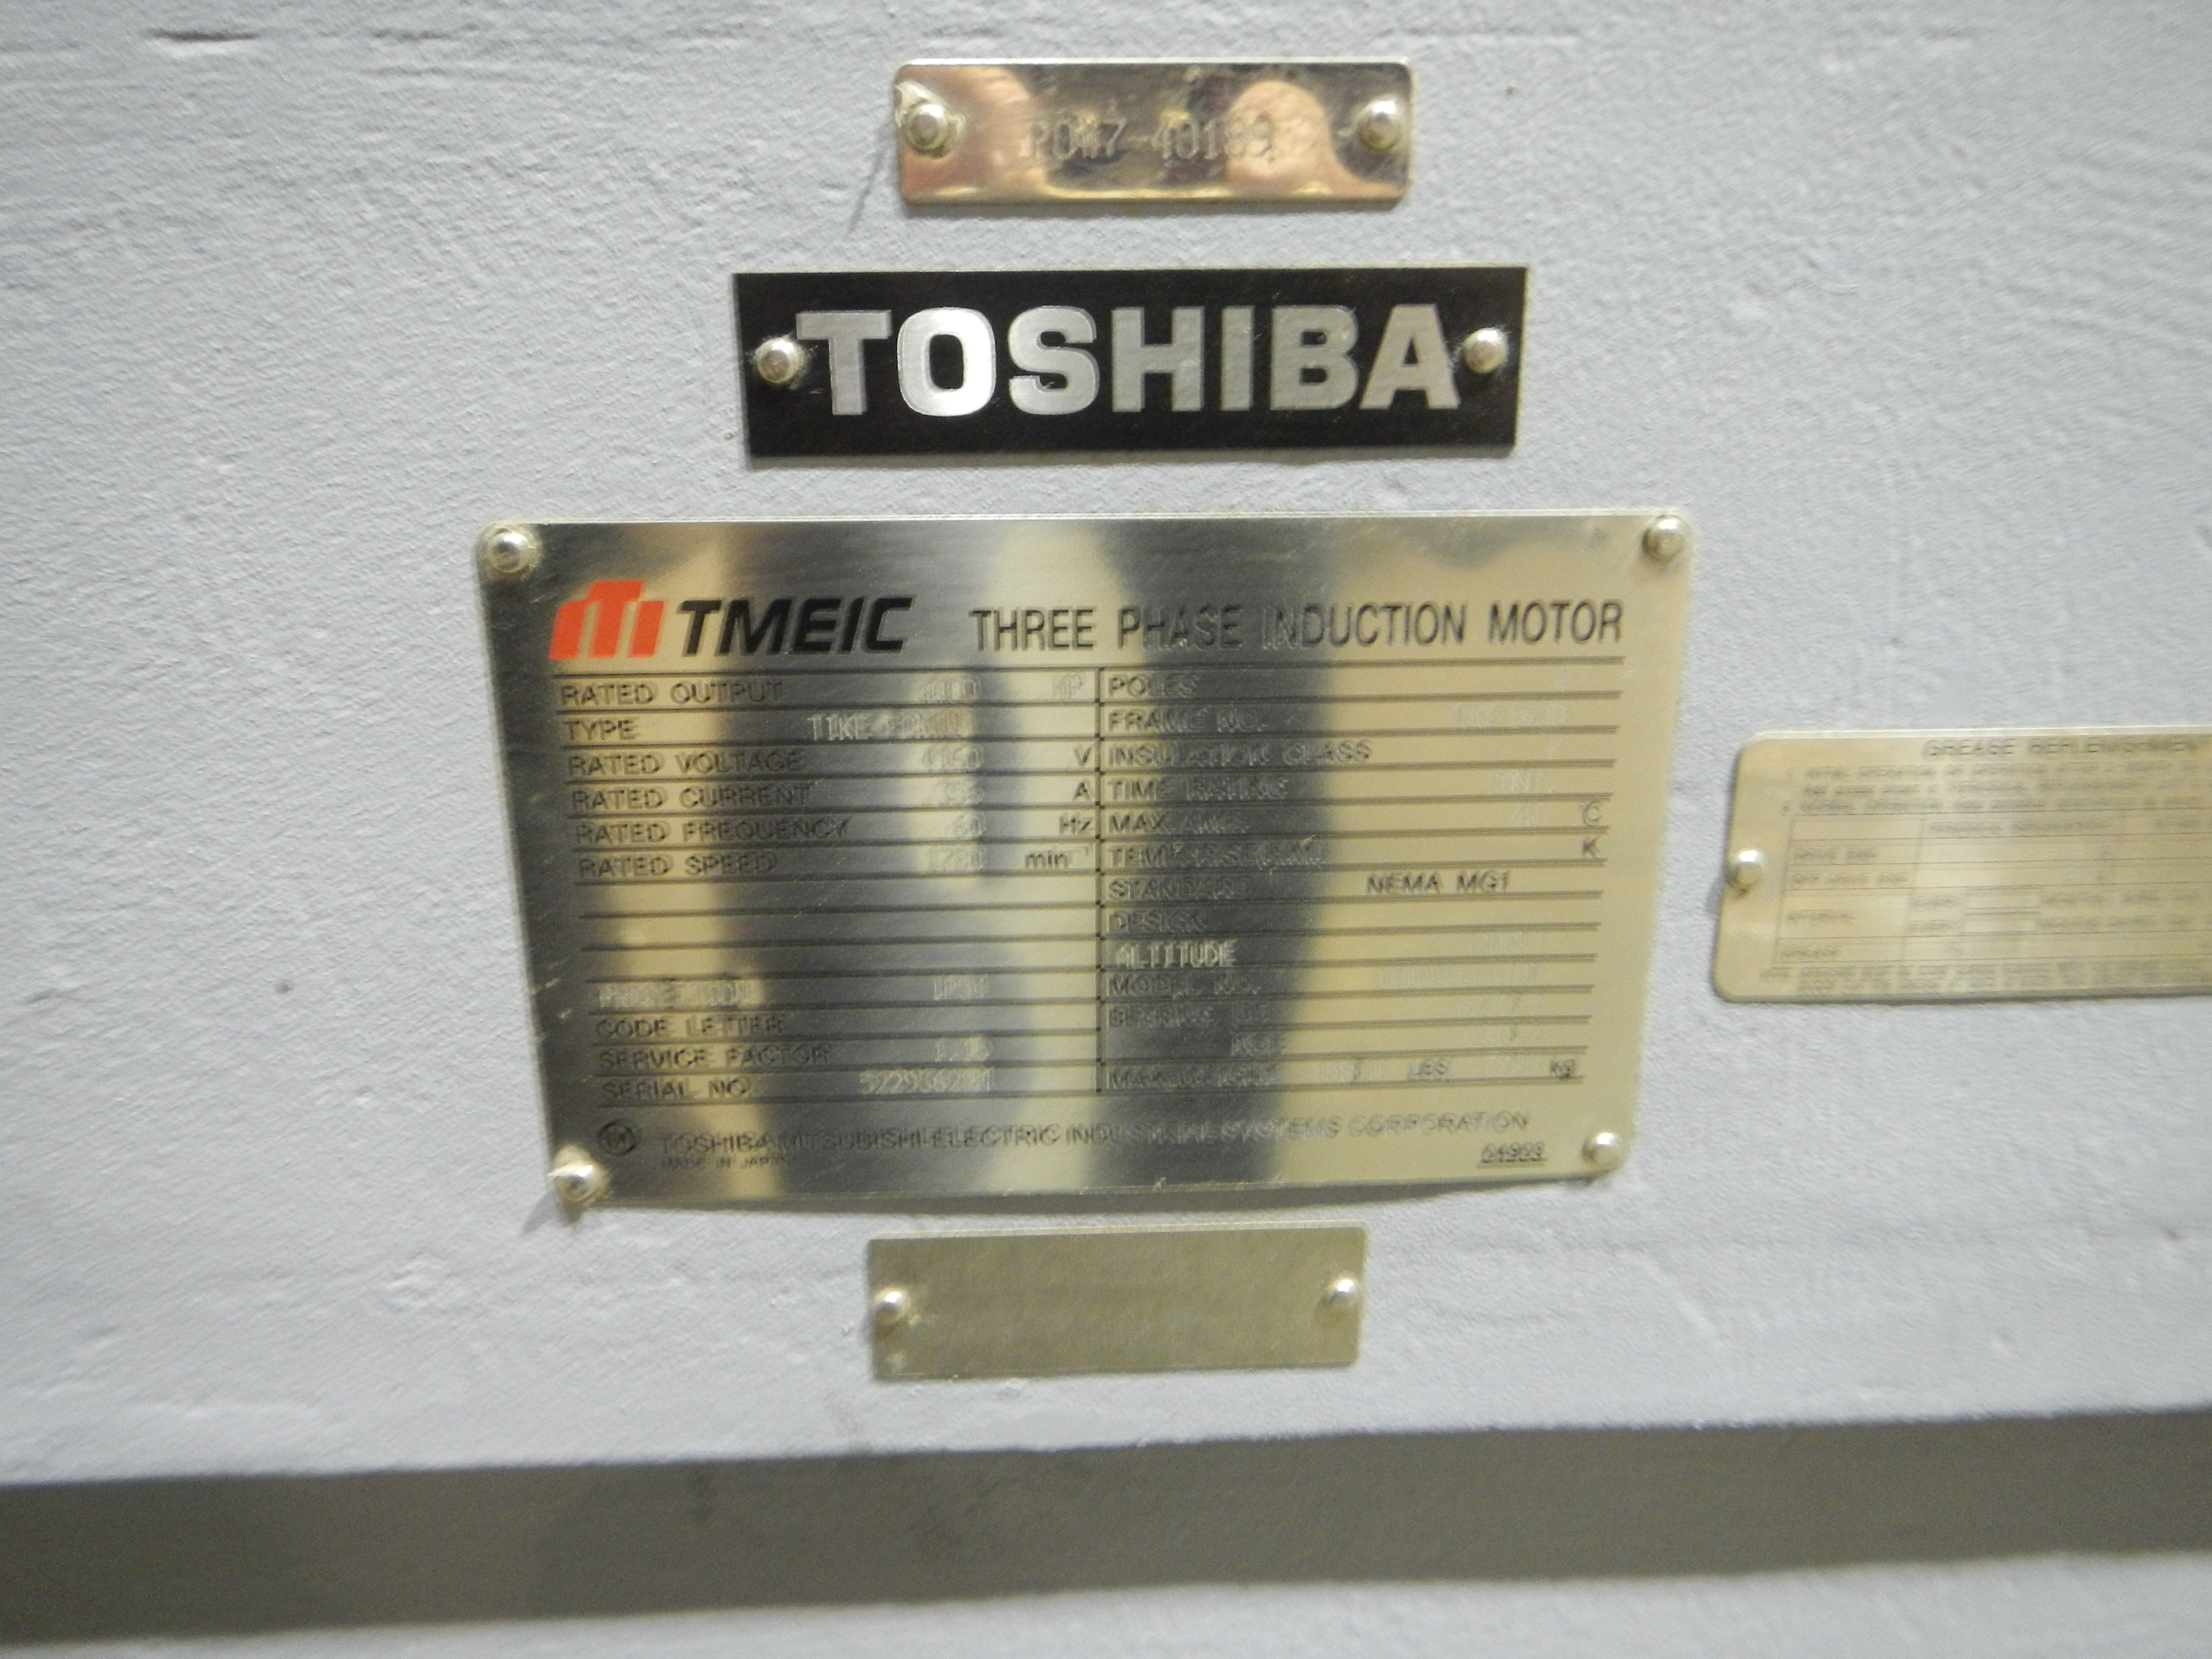 How To Read An Electric Motor Nameplate